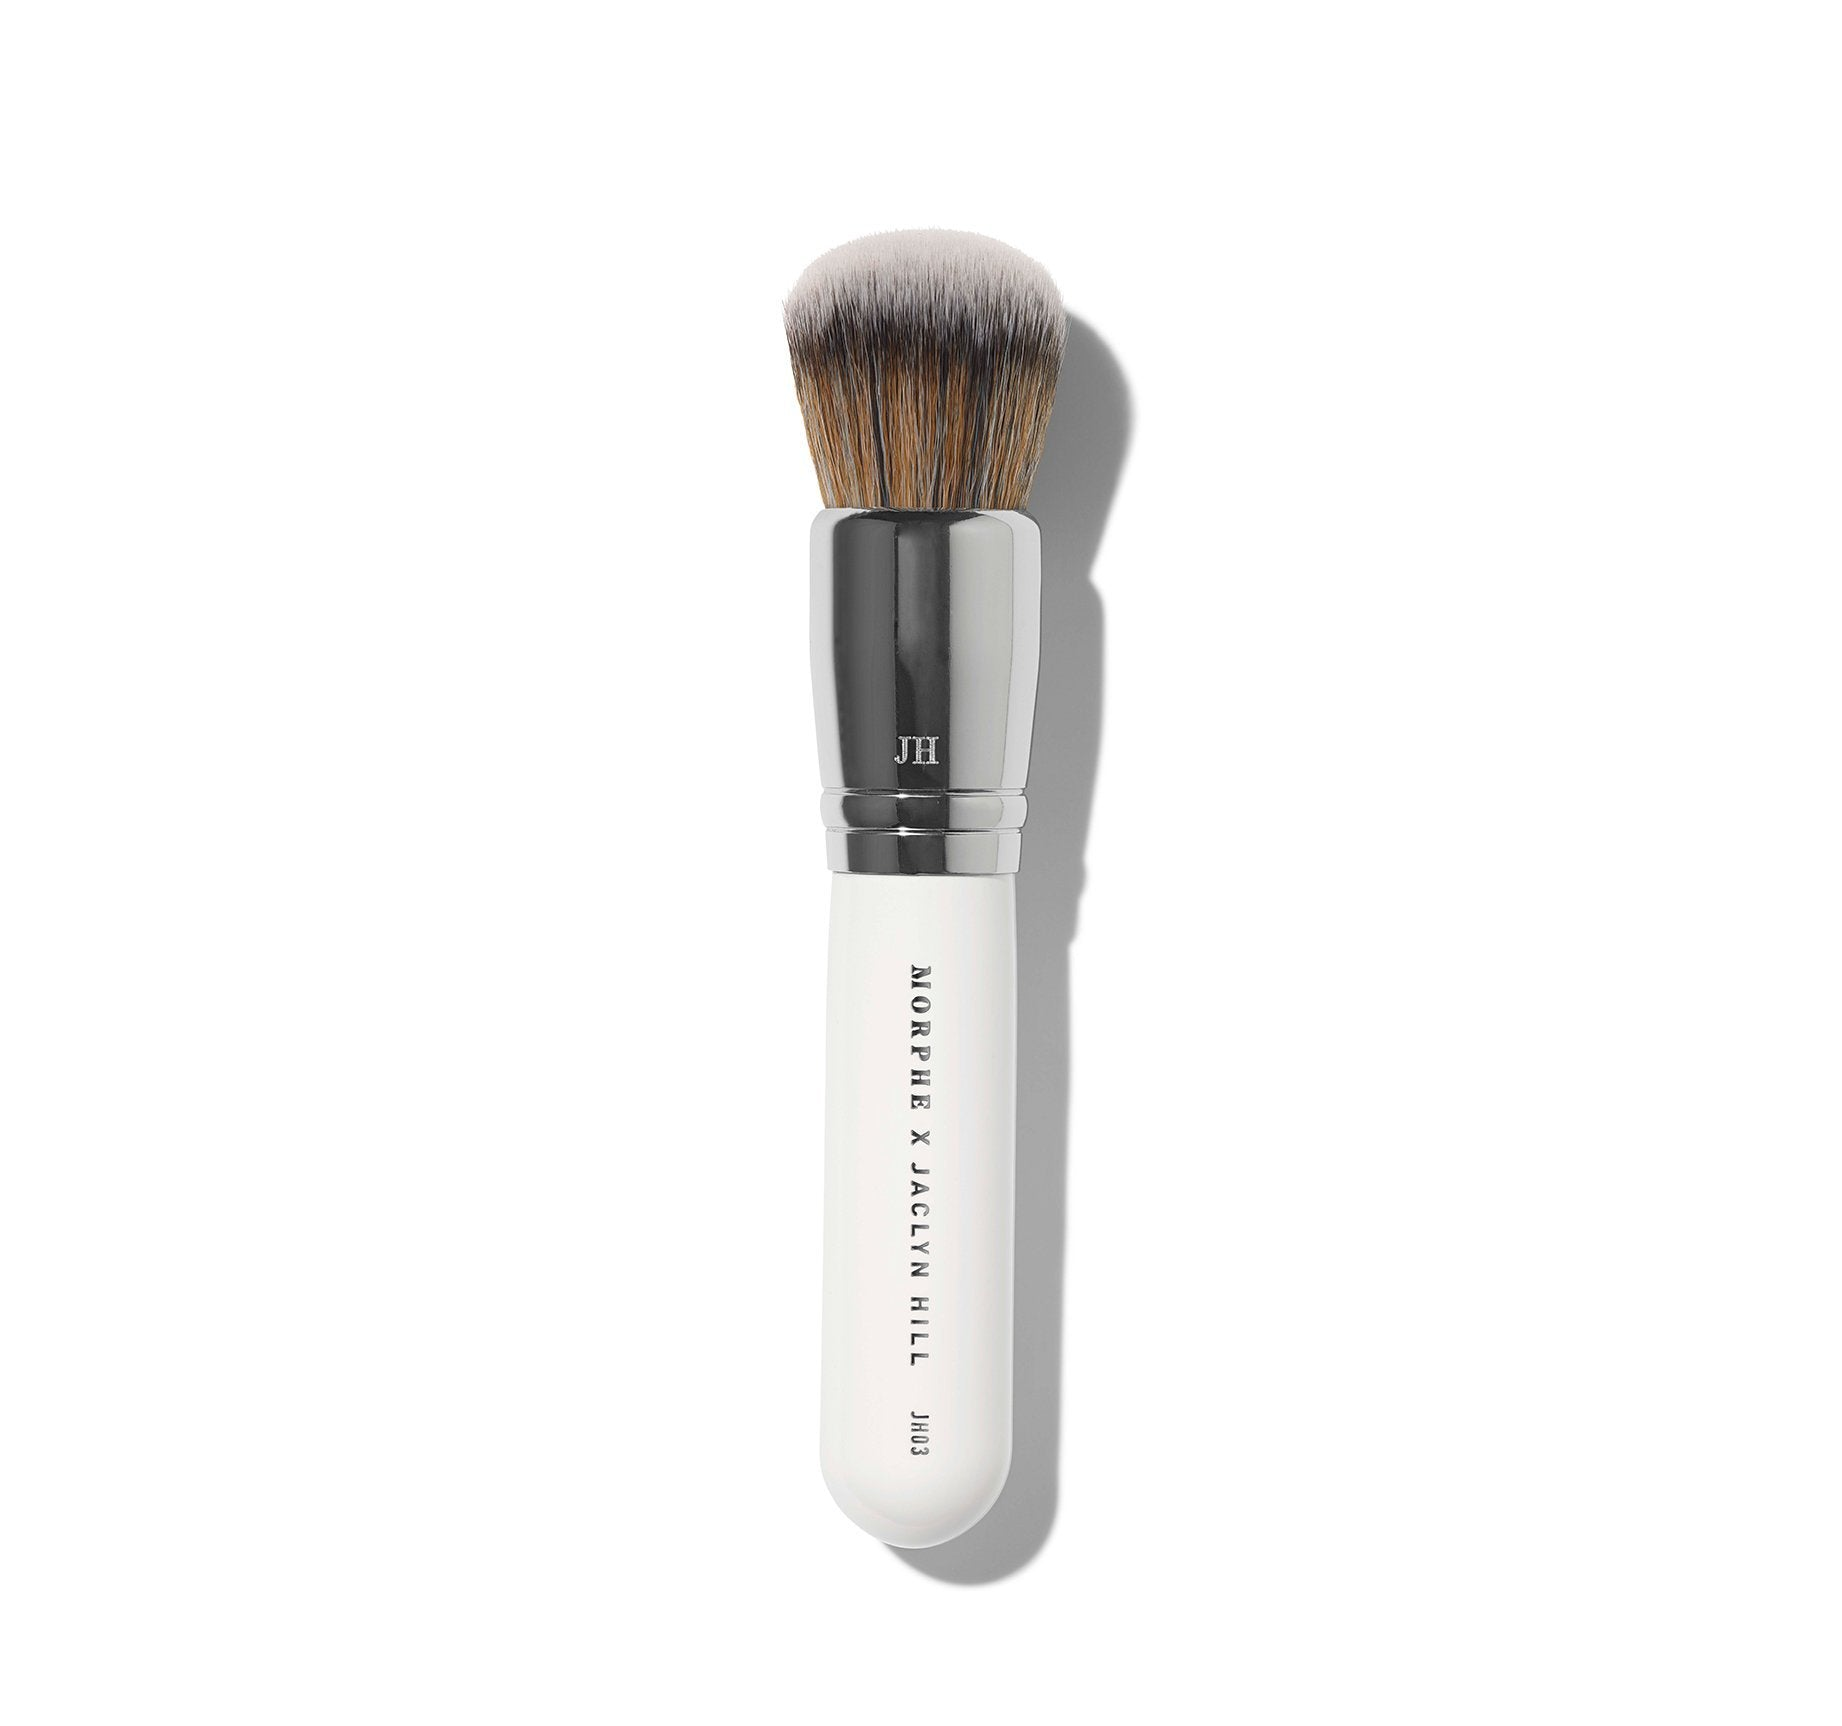 Morphe X Jaclyn Hill Jh03 Ride Or Die Foundation Brush These are my personal best and favorite morphe brushes! morphe x jaclyn hill jh03 ride or die foundation brush